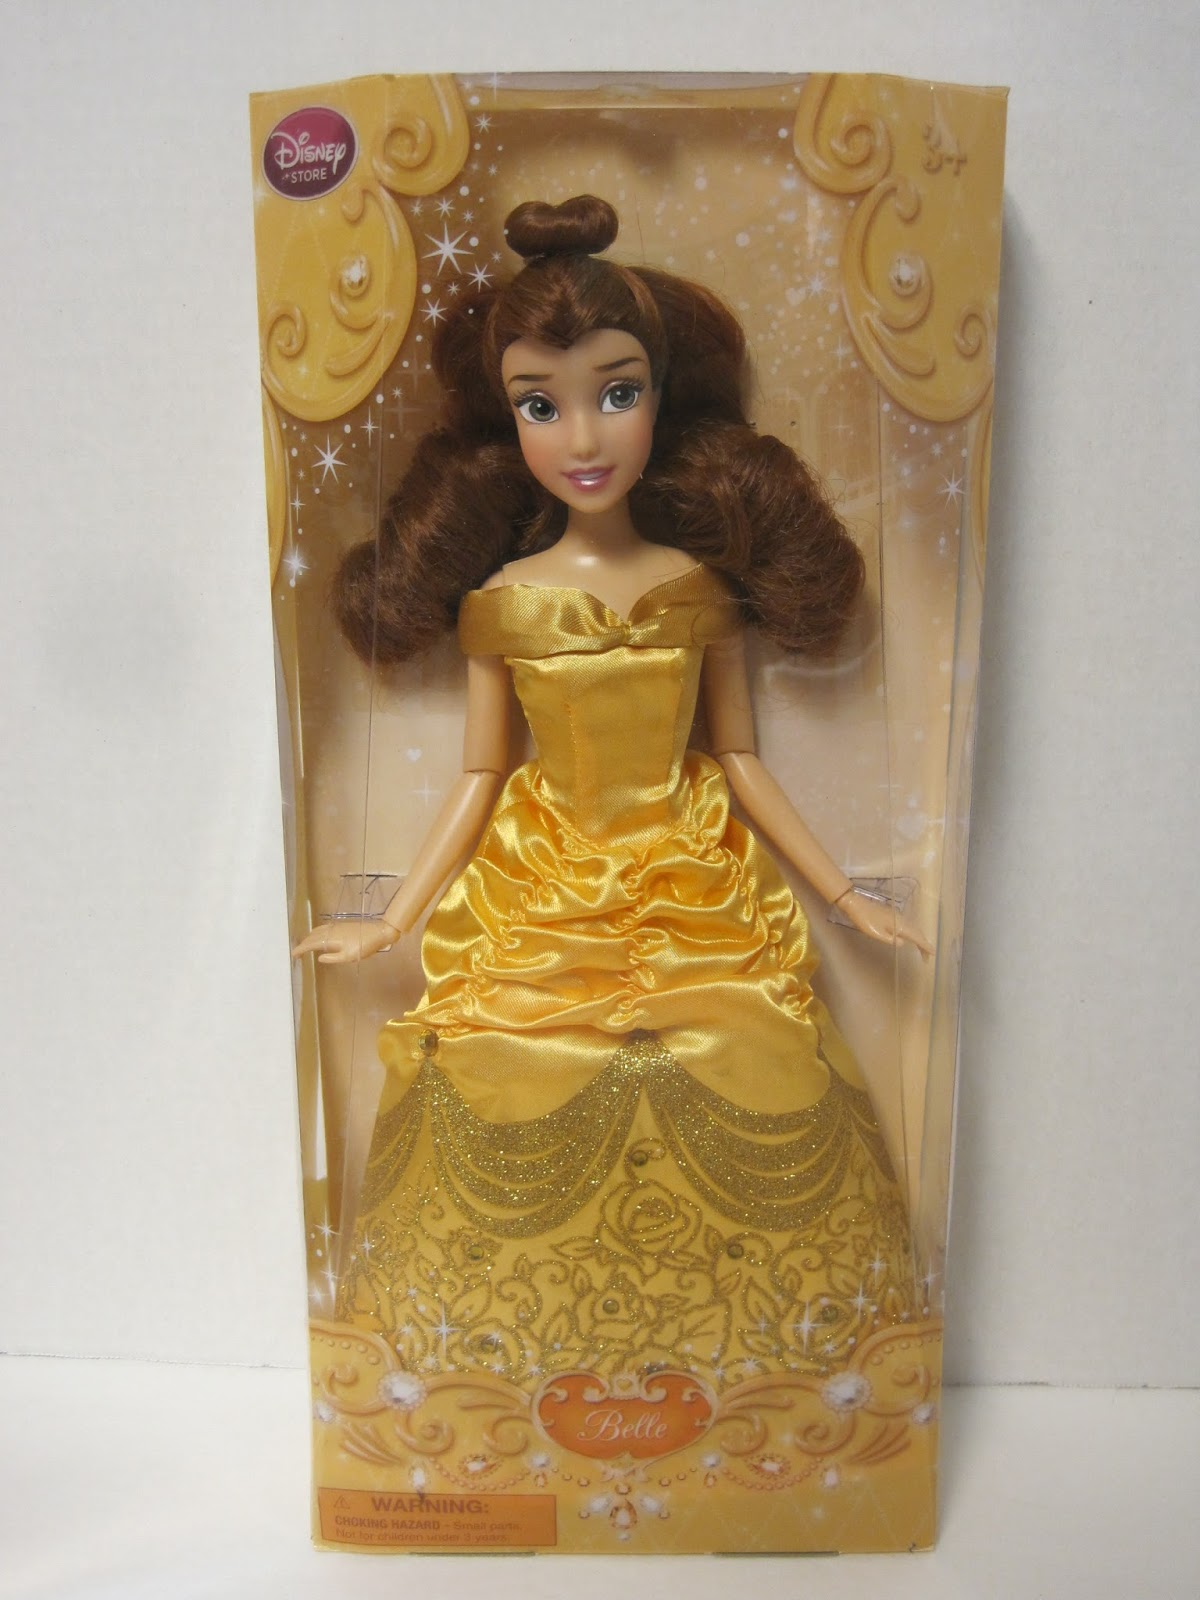 Belle S Diary Bohemian Style: Never Grow Up: A Mom's Guide To Dolls And More: Disney